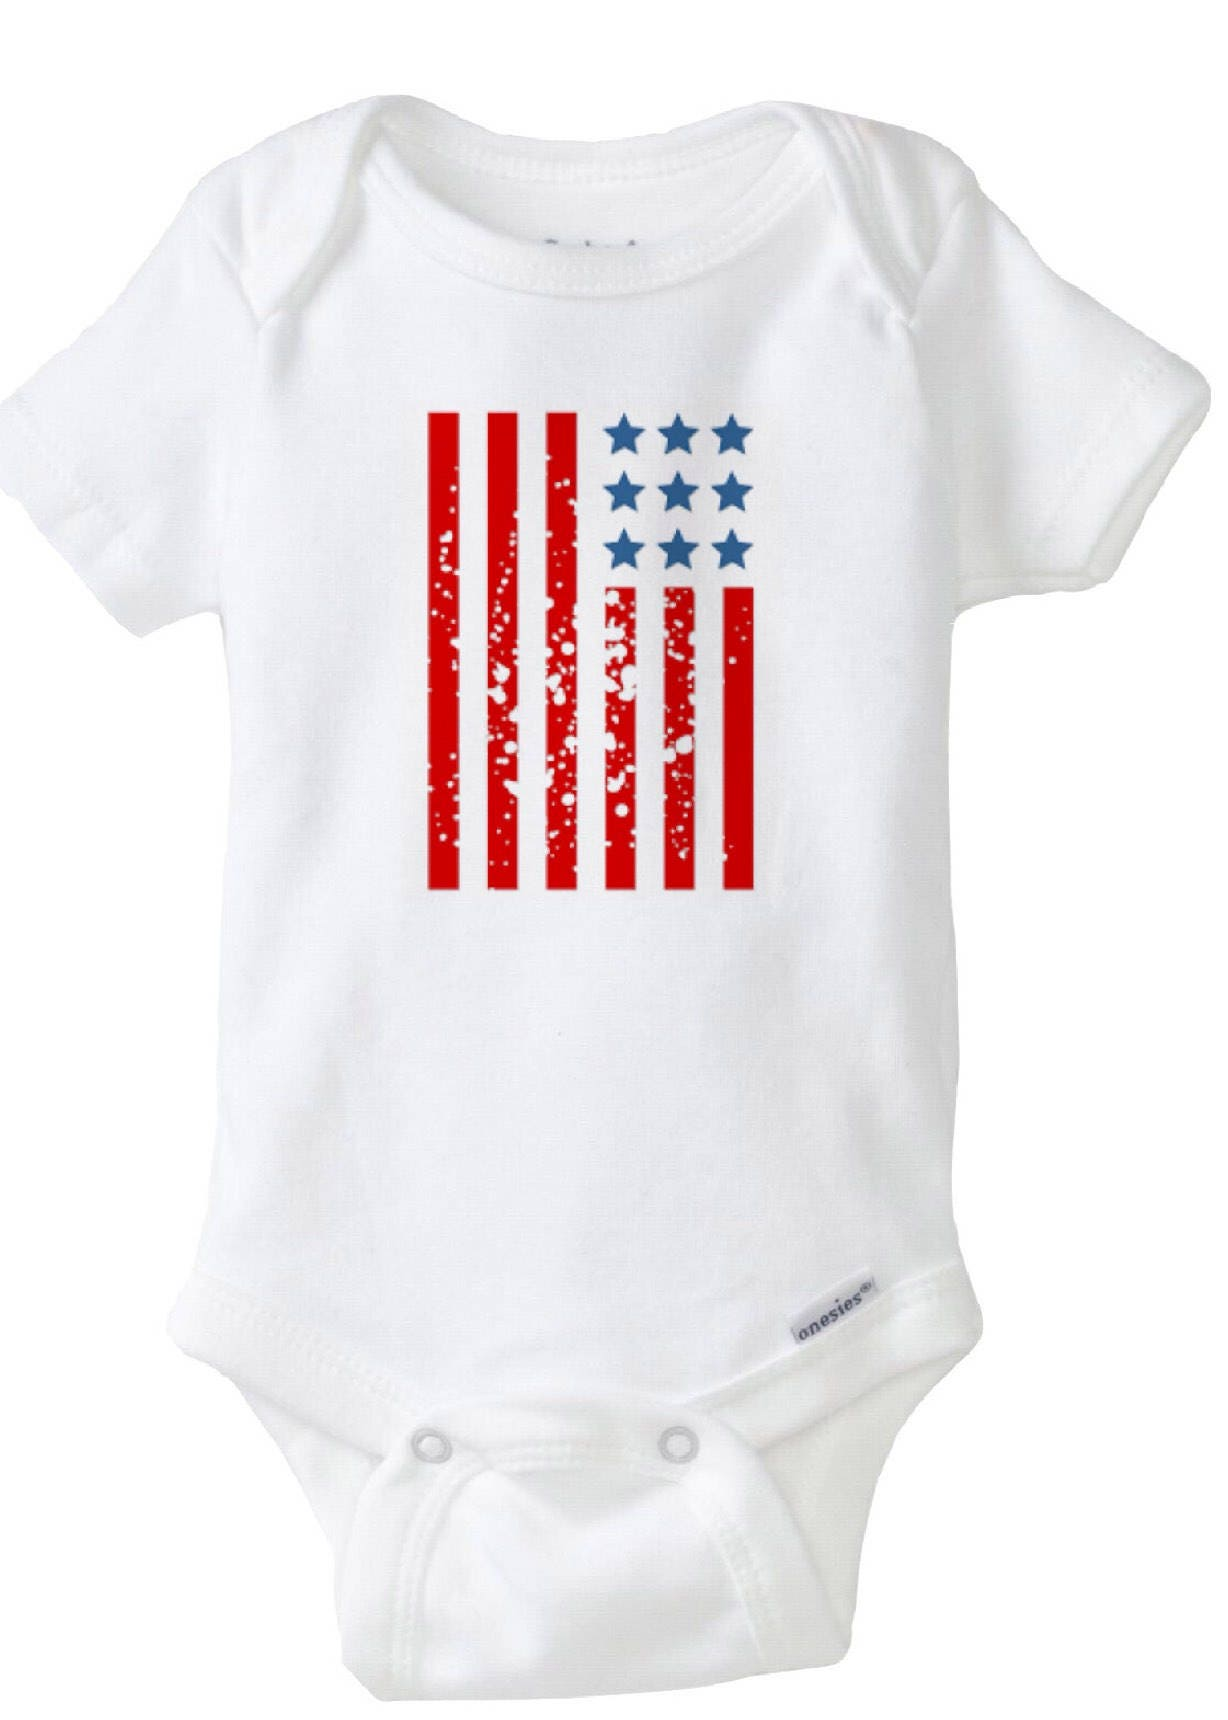 Hudson Baby features premium baby basics with modern designs and more durable, softer fabrics. We strive to enhance comfort, quality and cuteness of baby essentials with gentle fabrics and detailed designs for your little one. Our line includes apparel, bibs, blankets, gift sets, hooded towels, socks, washcloths and more.